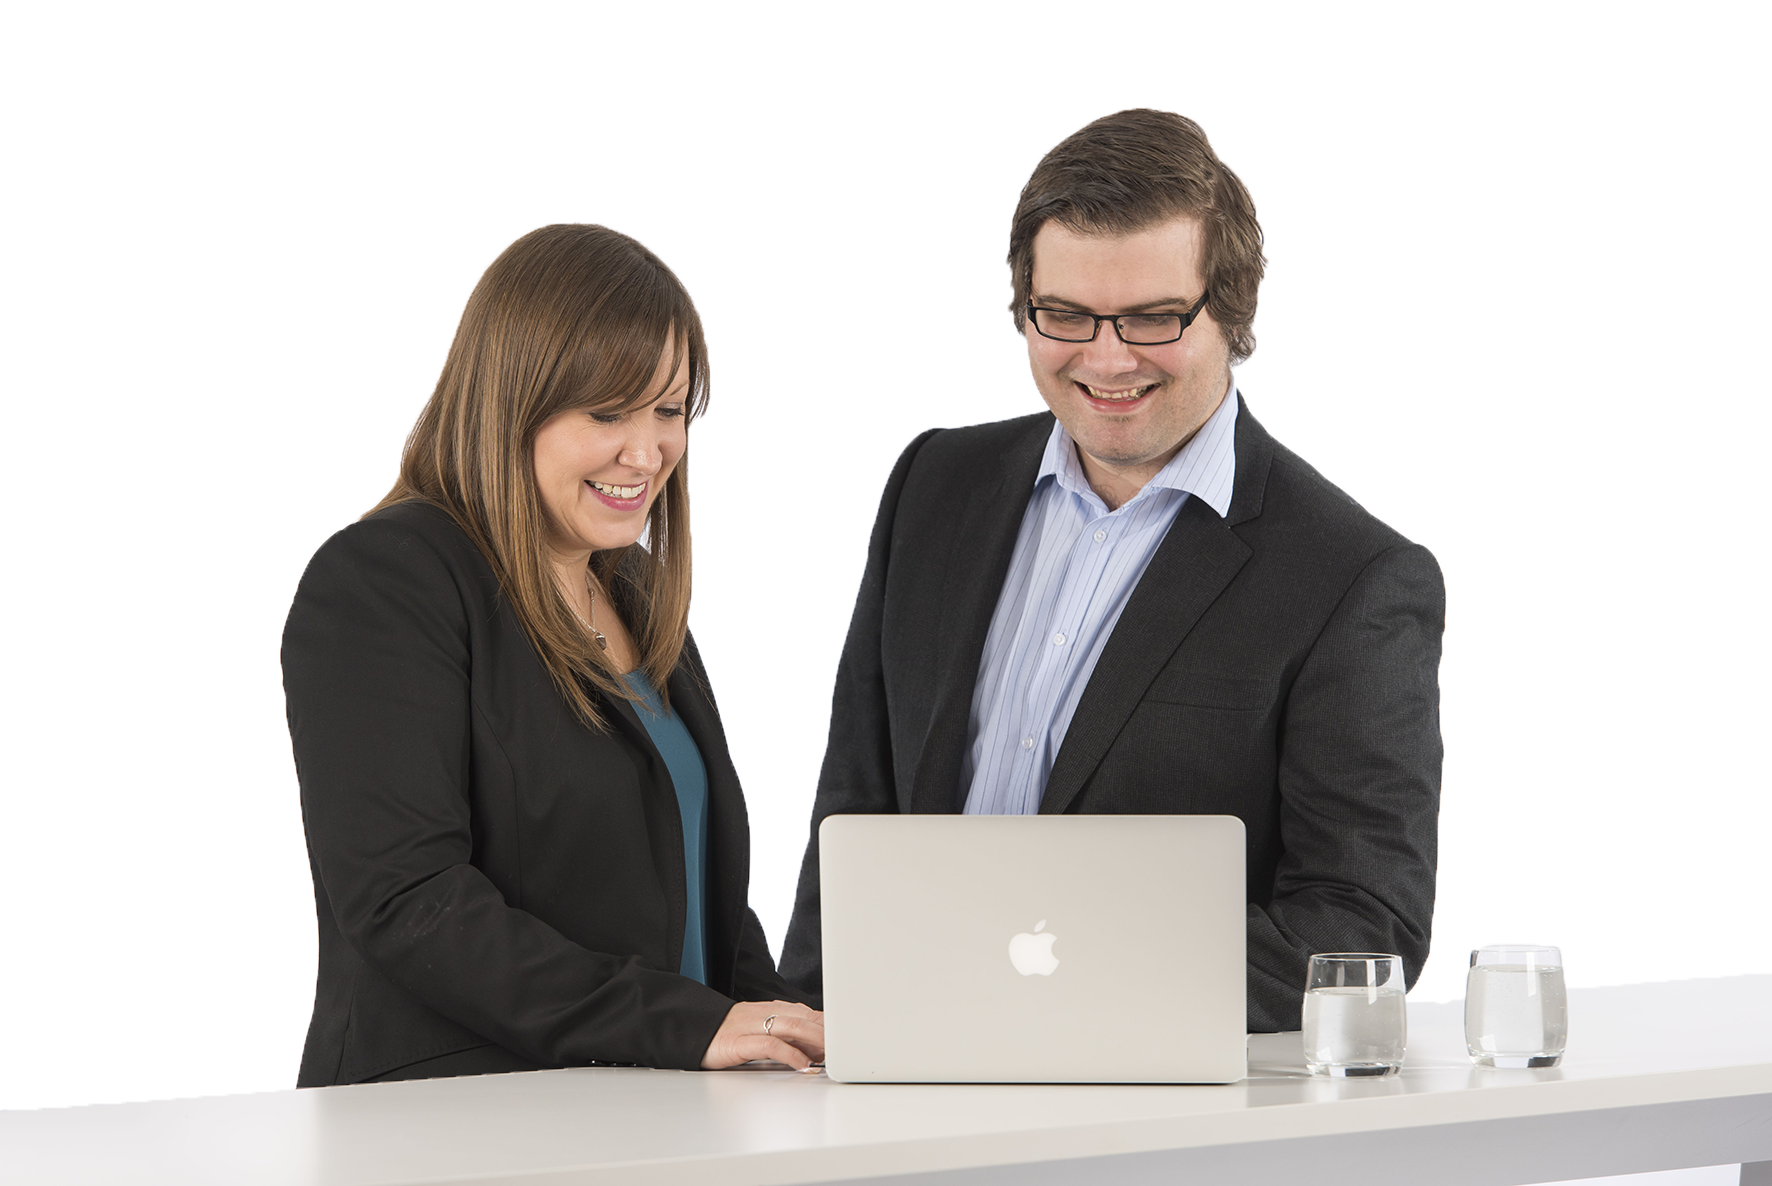 A women and a man looking at a laptop smiling and wearing smart business attire | Hugh James